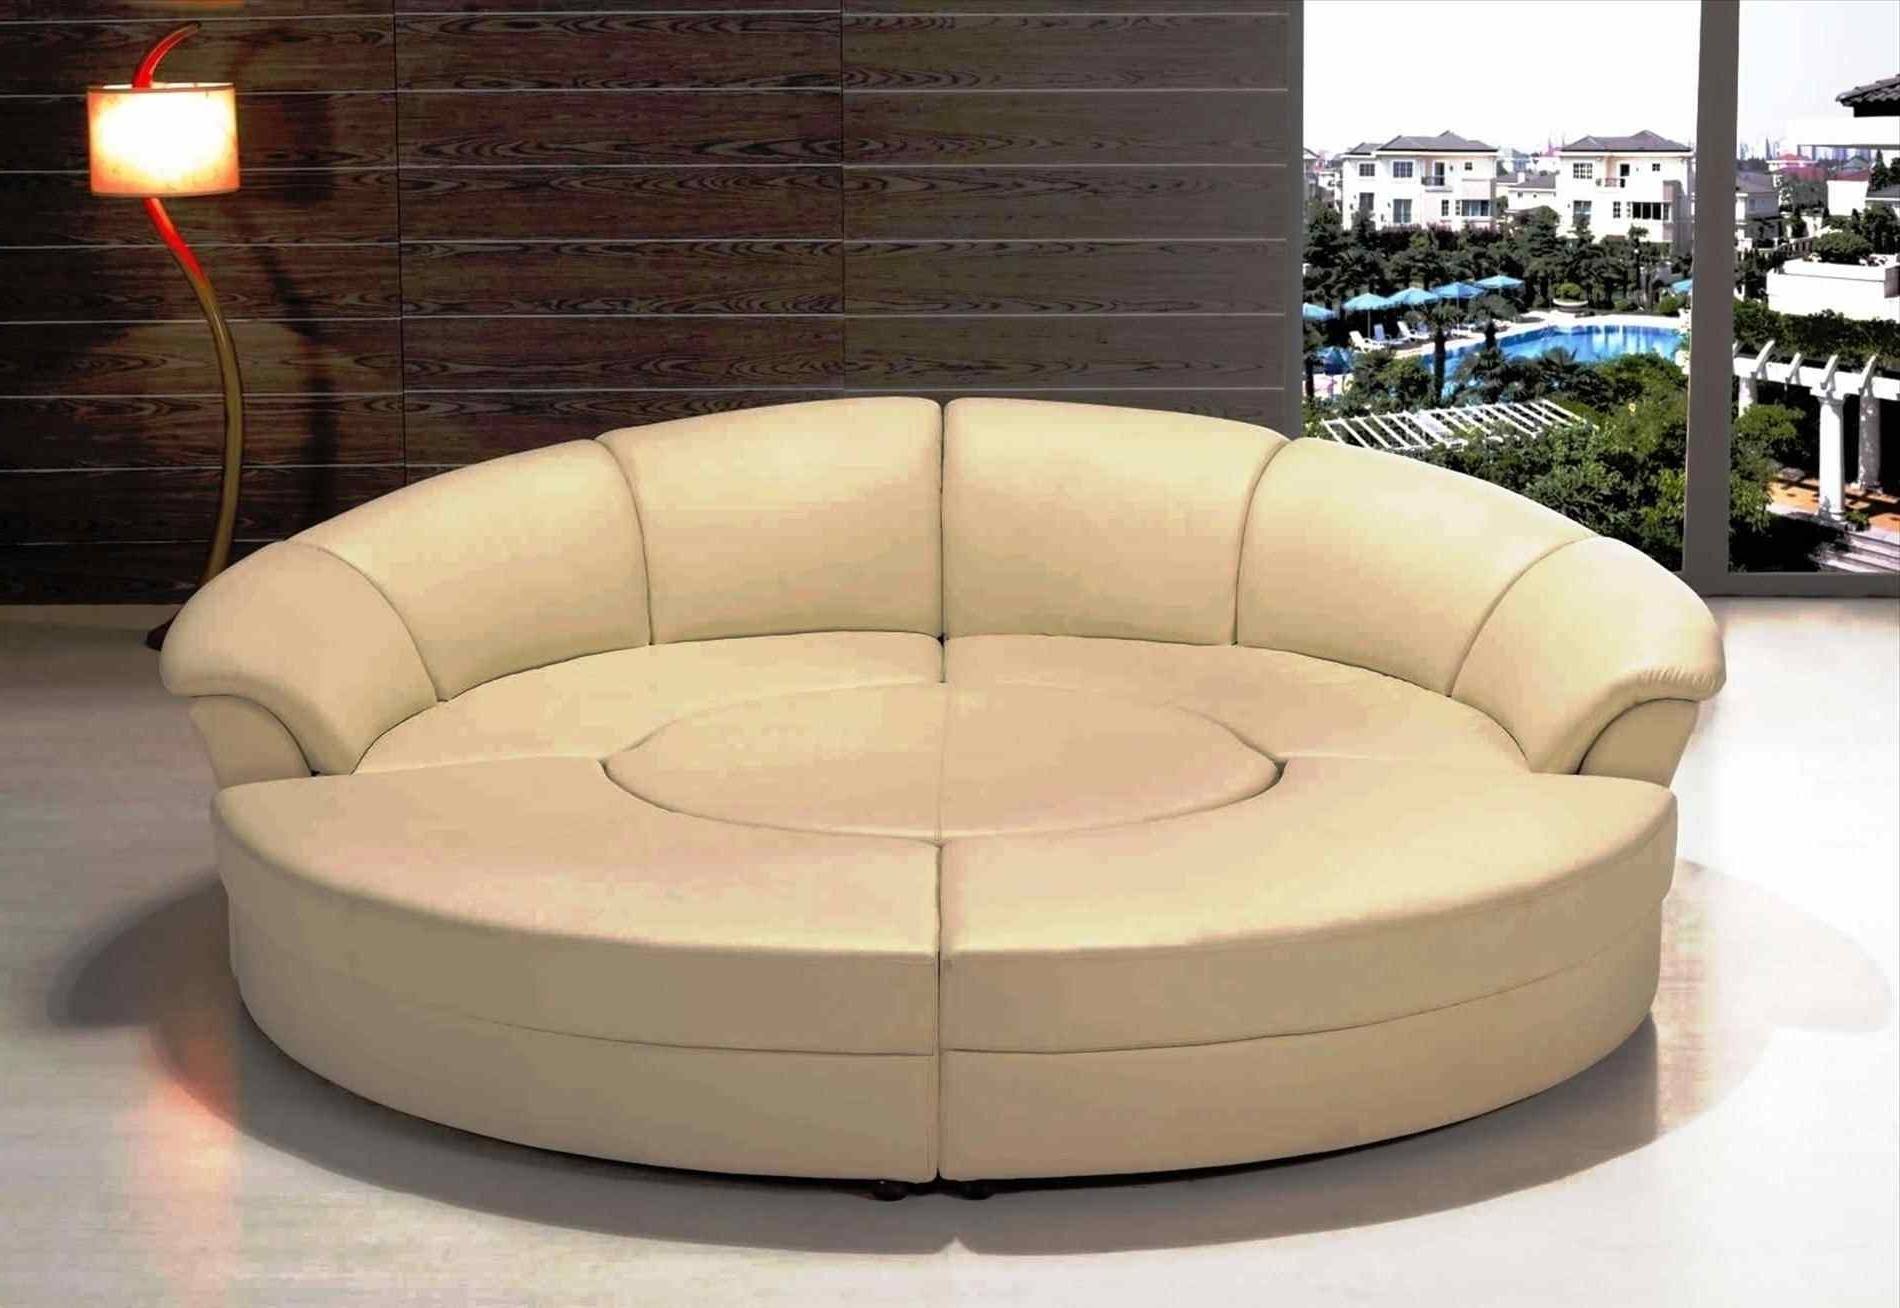 Circle Sofas Intended For Fashionable Couch : Furniture Circle Couch Manstad Sofa Bed For Cozy Living (View 7 of 20)